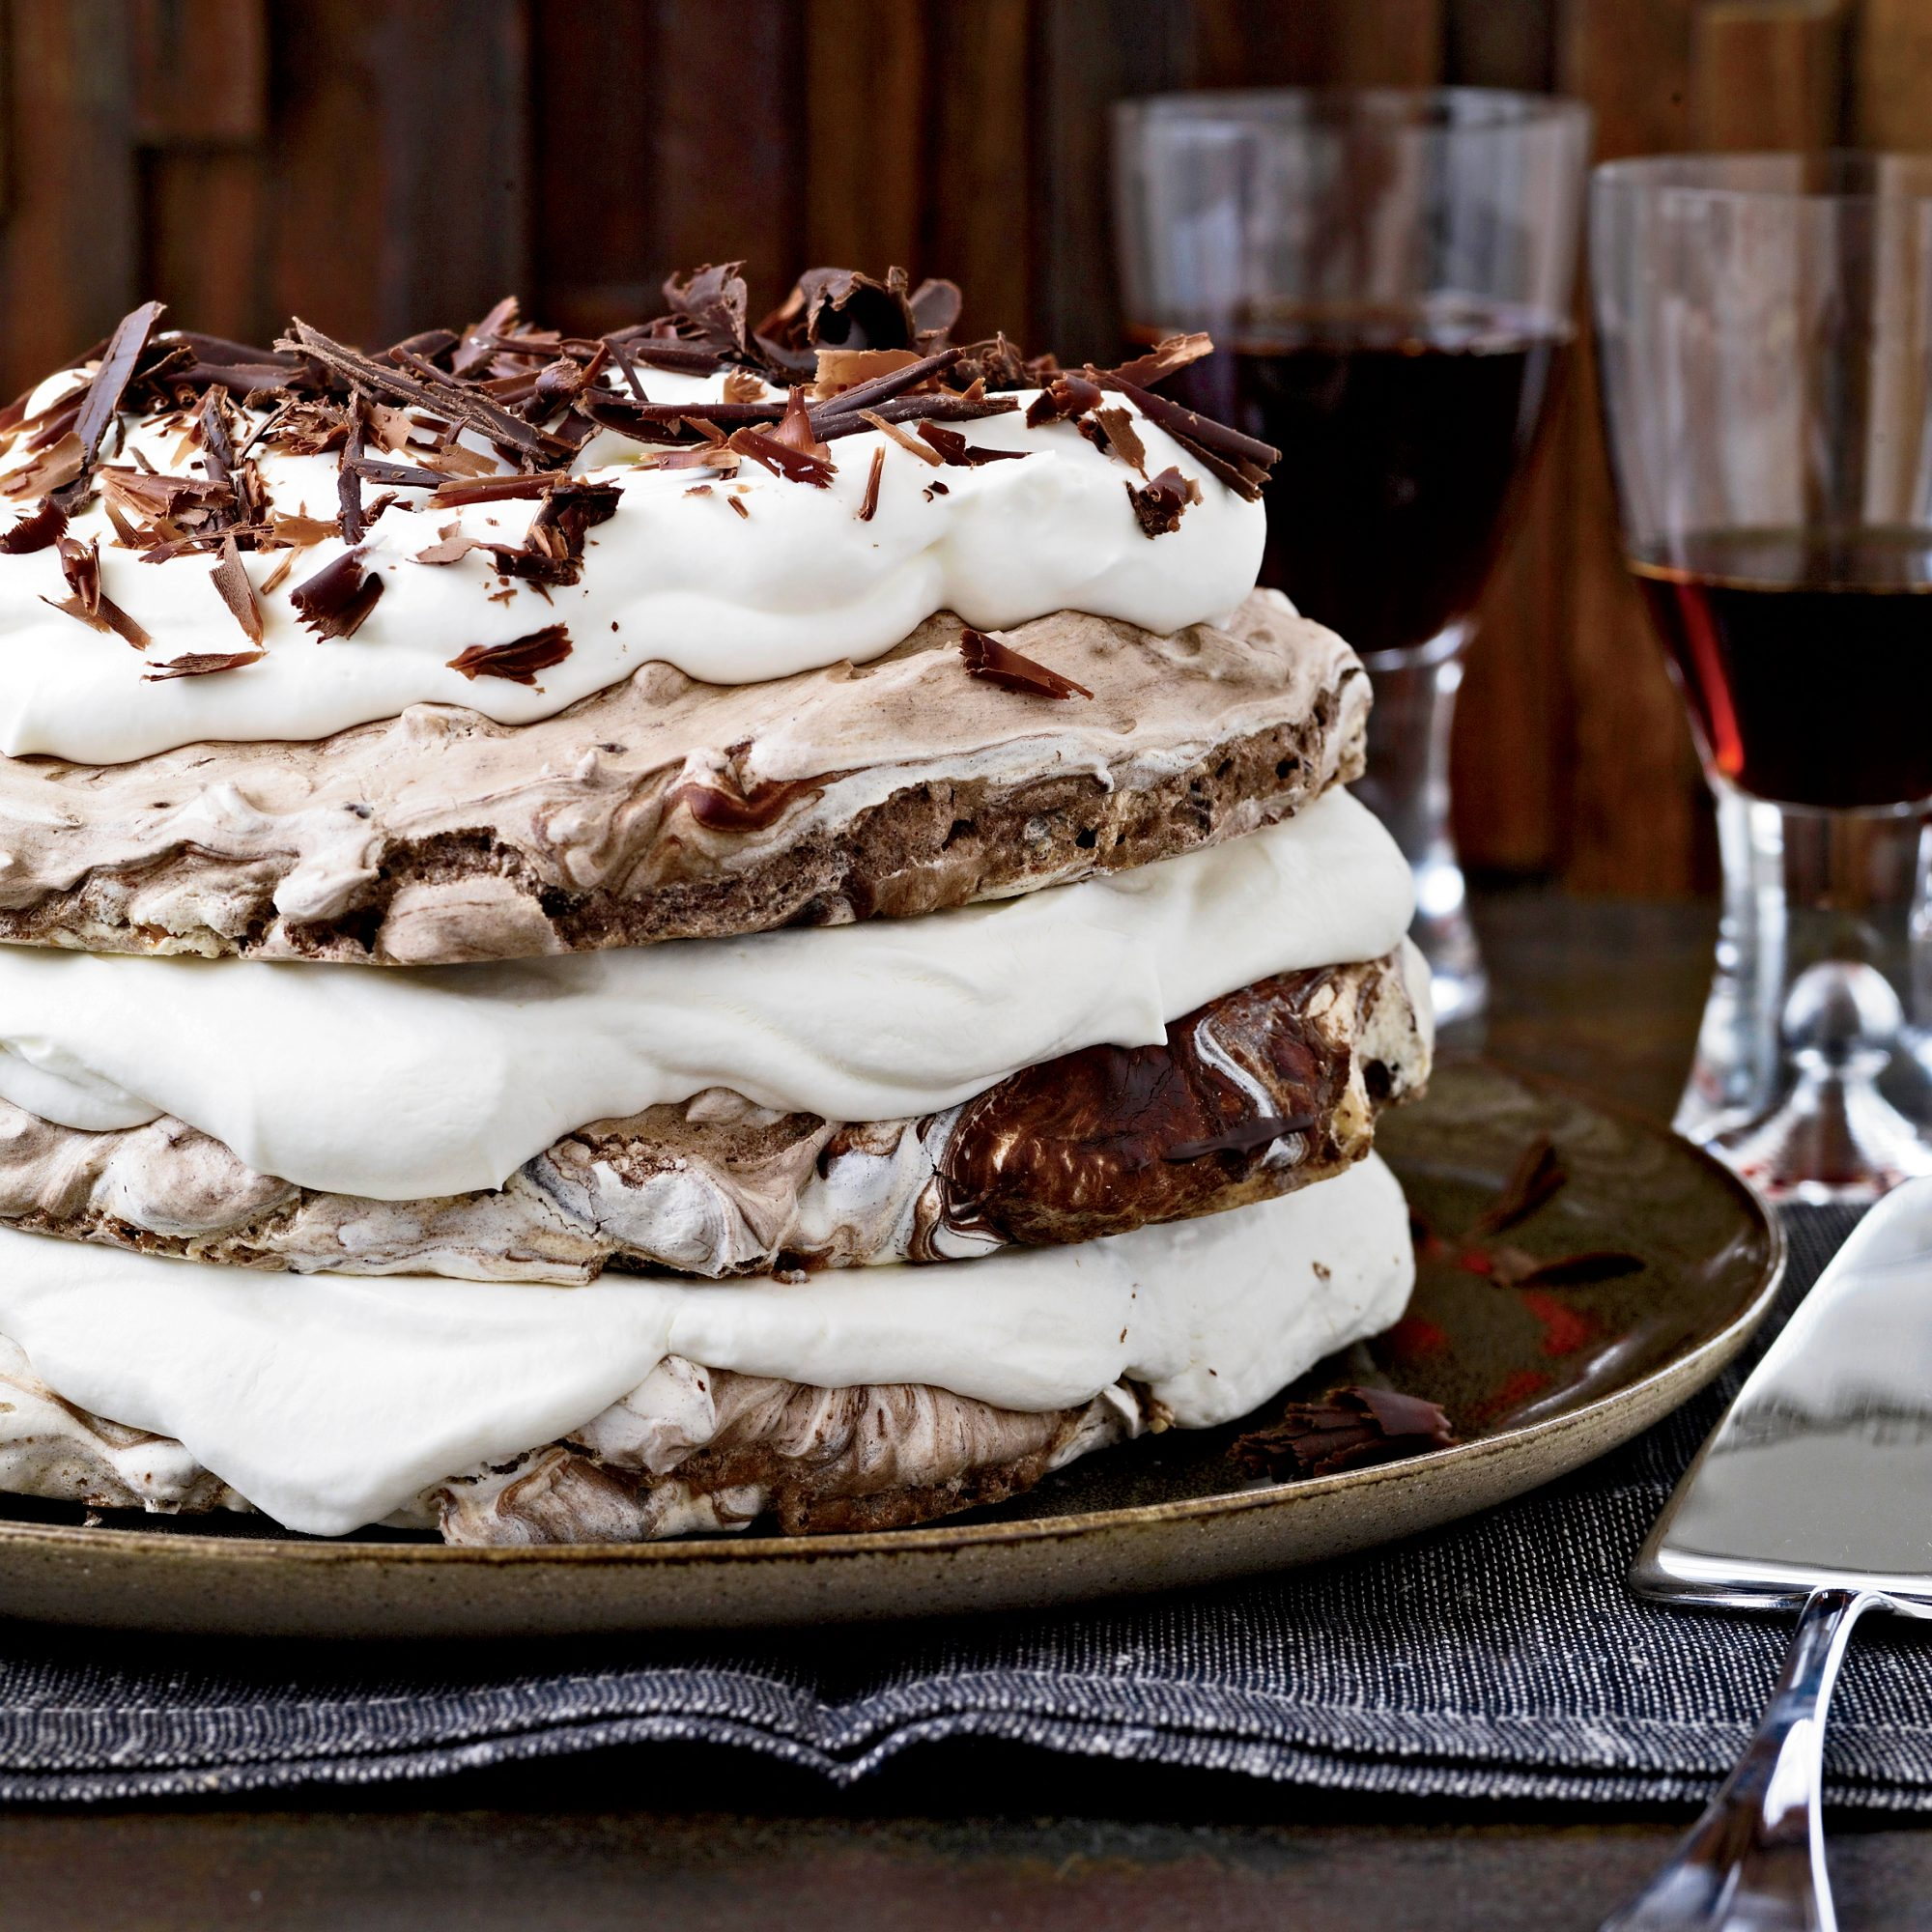 Desserts for Passover